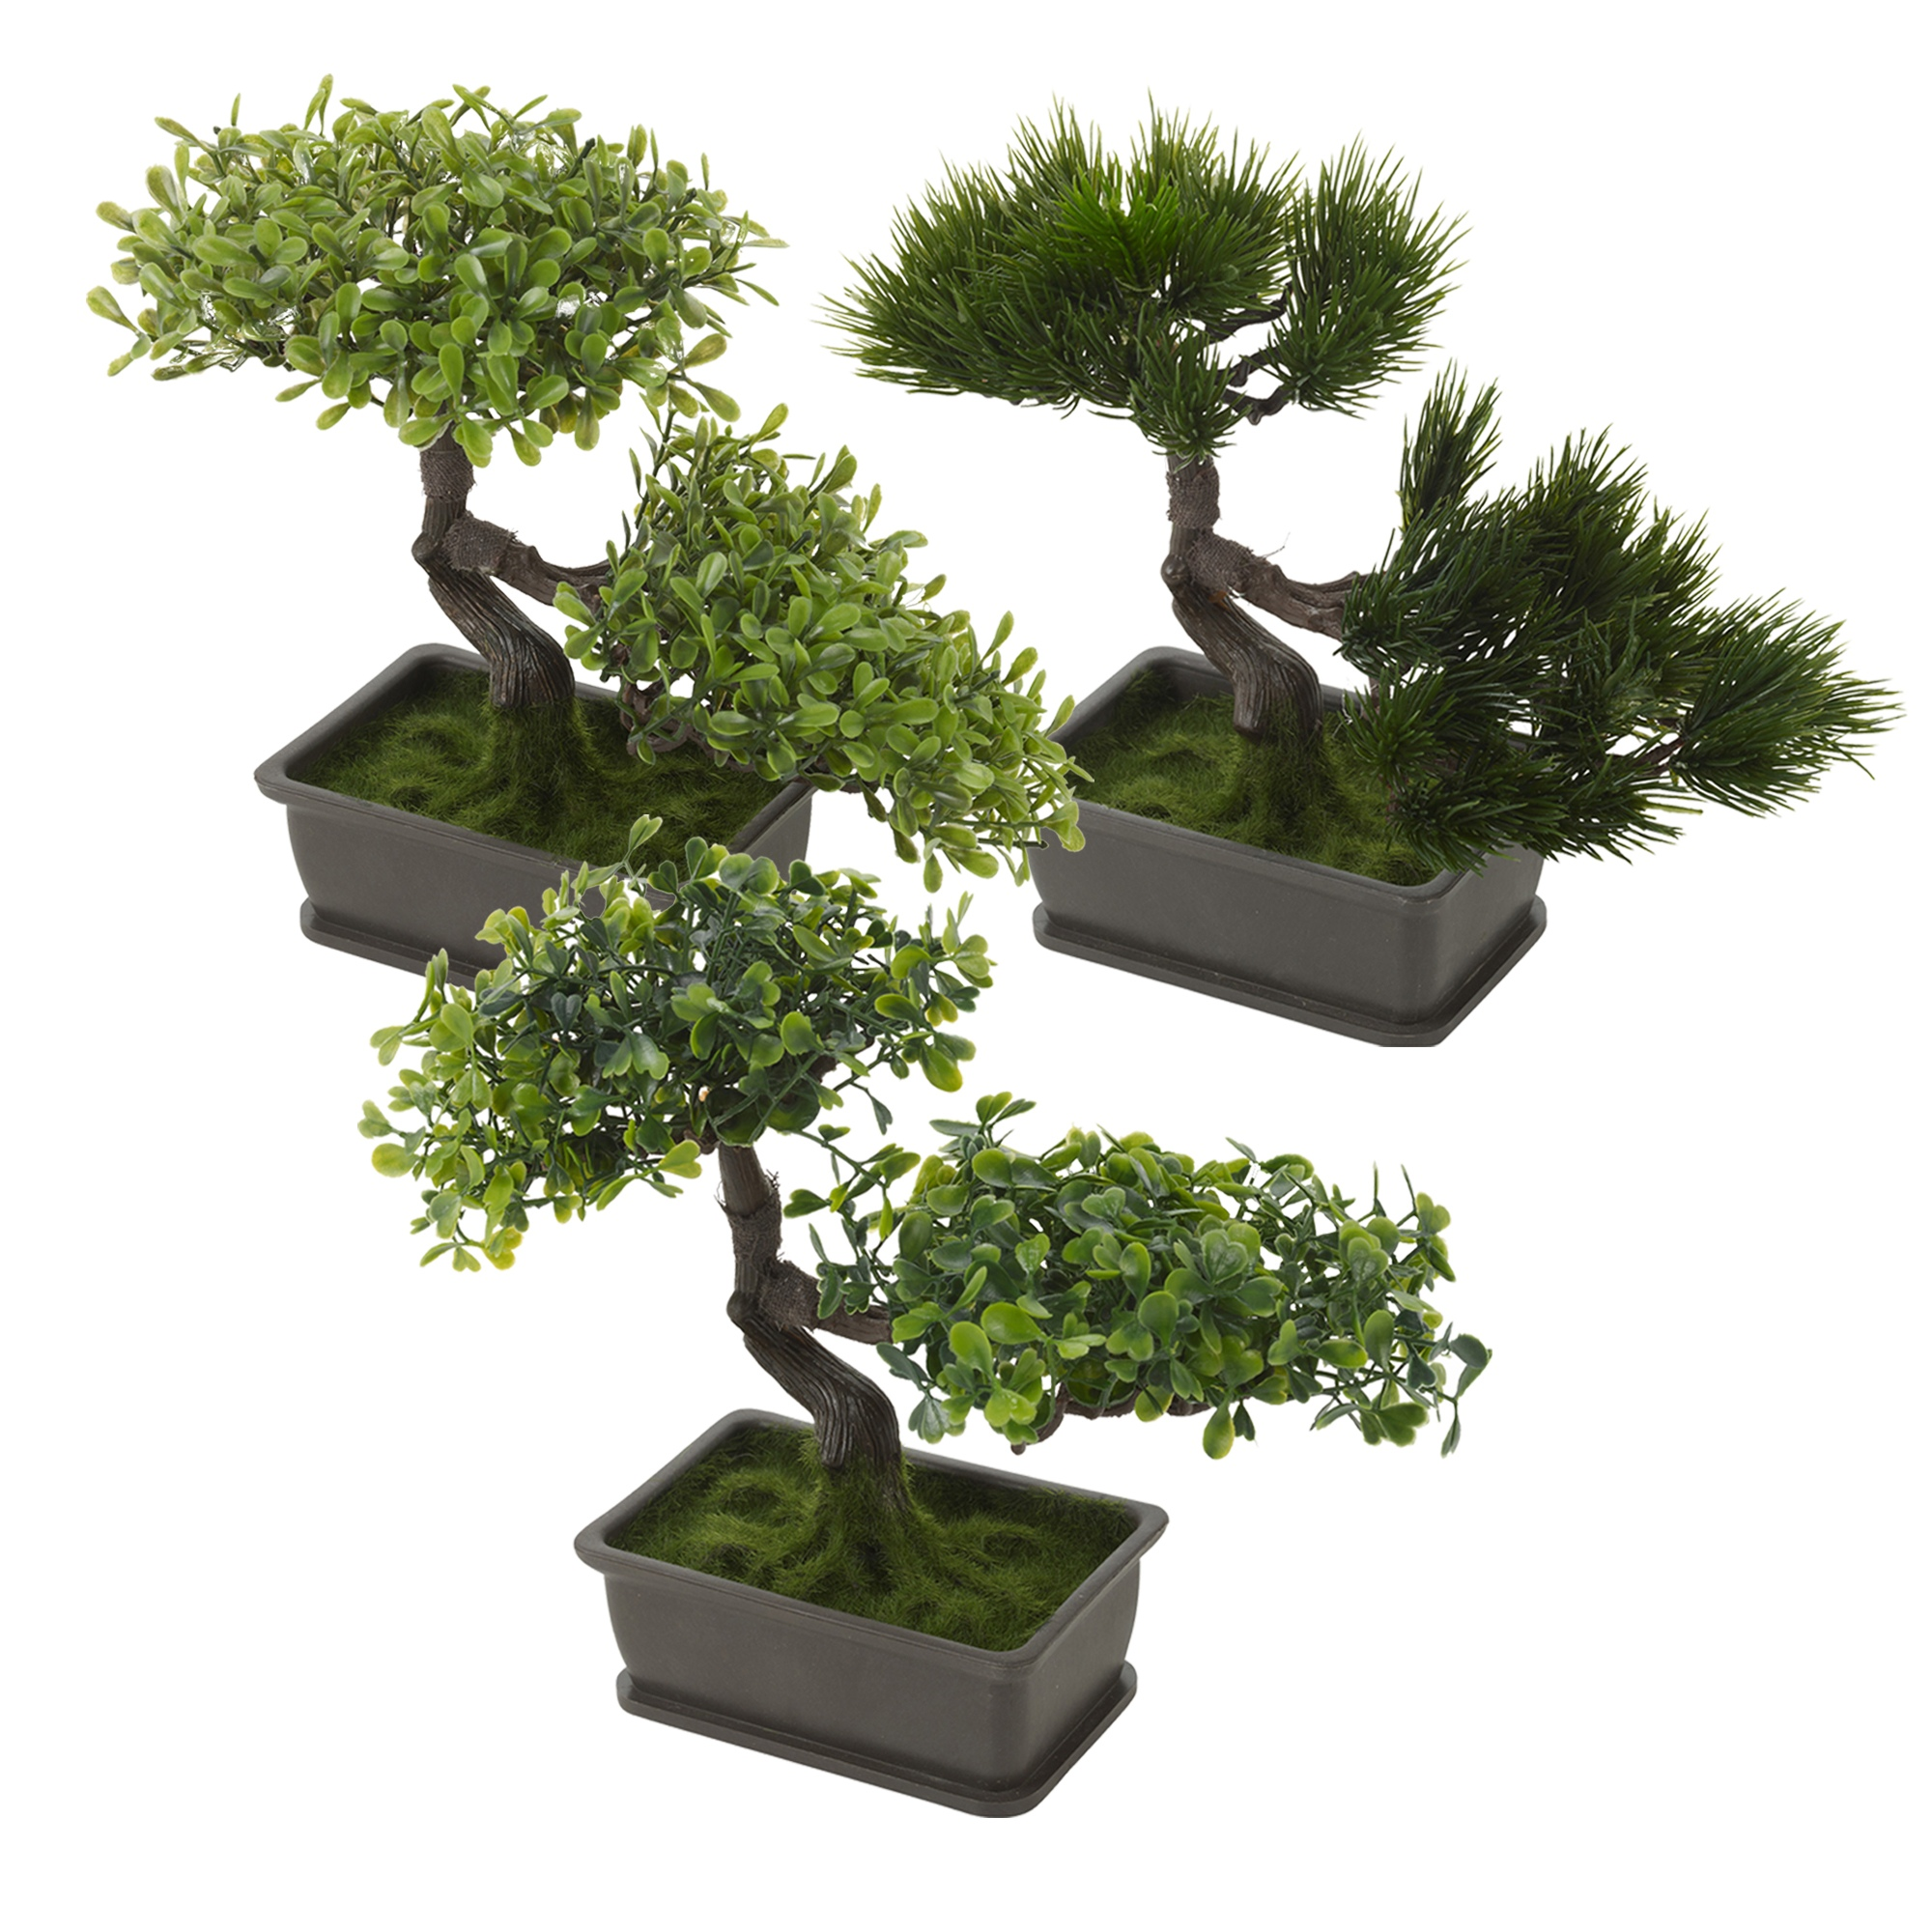 d corative artificiel r aliste plastique bureau faux bosnai arbre en pot plante ebay. Black Bedroom Furniture Sets. Home Design Ideas